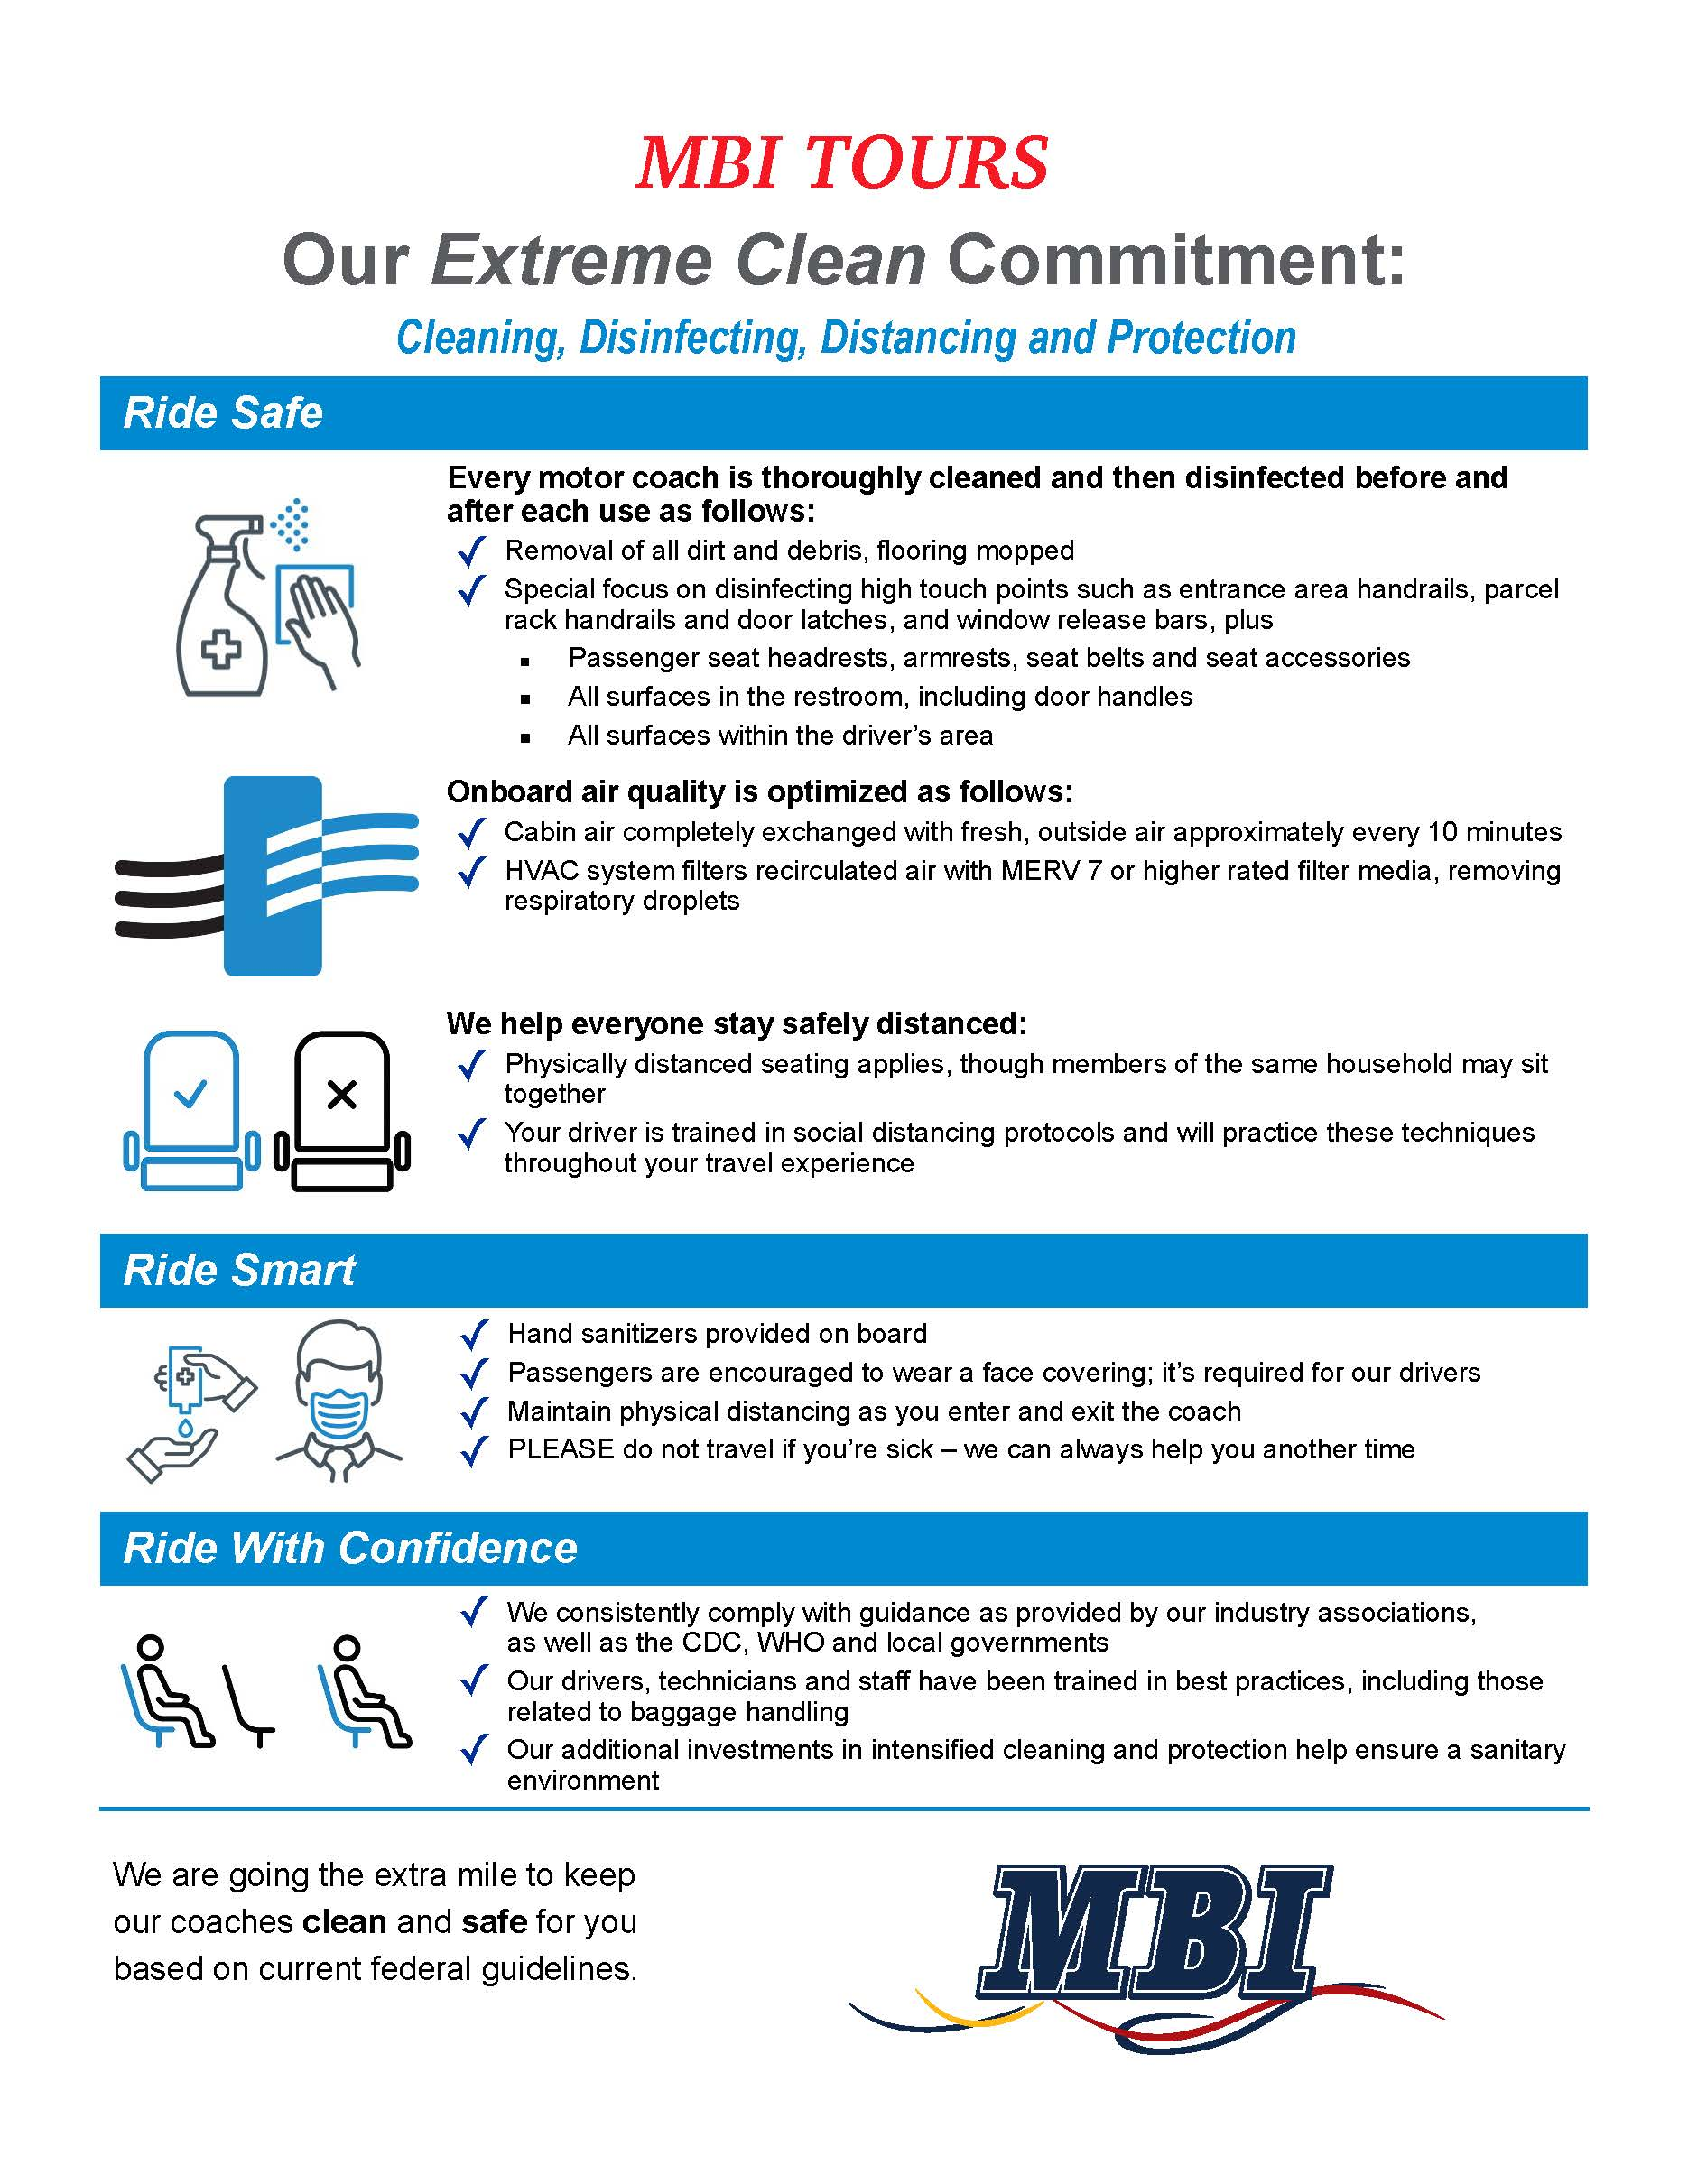 MBI Tours - Our Extreme Clean Commitment